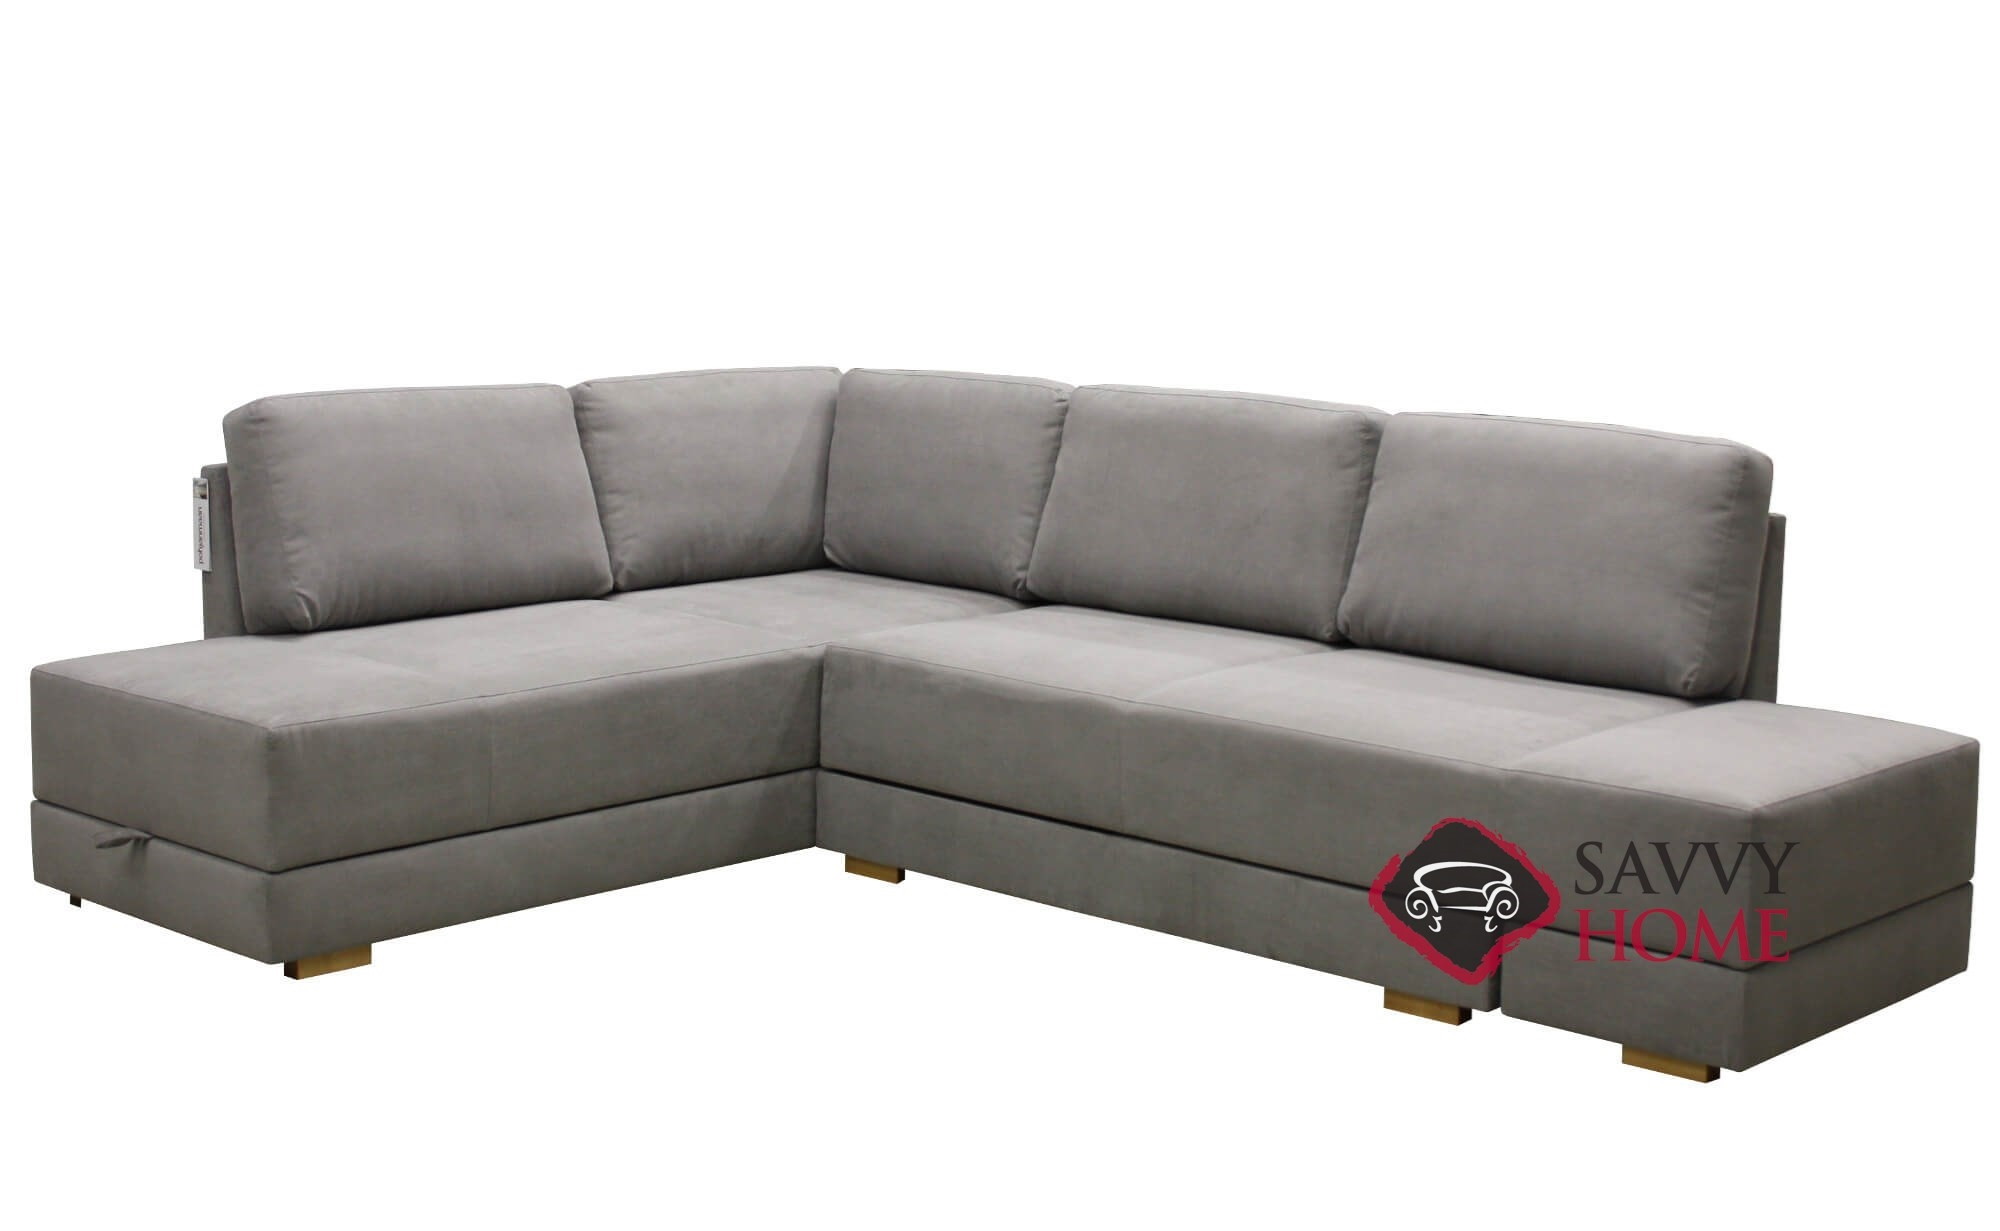 Charmant Brooklyn Sectional Sleeper Sofa By Luonto